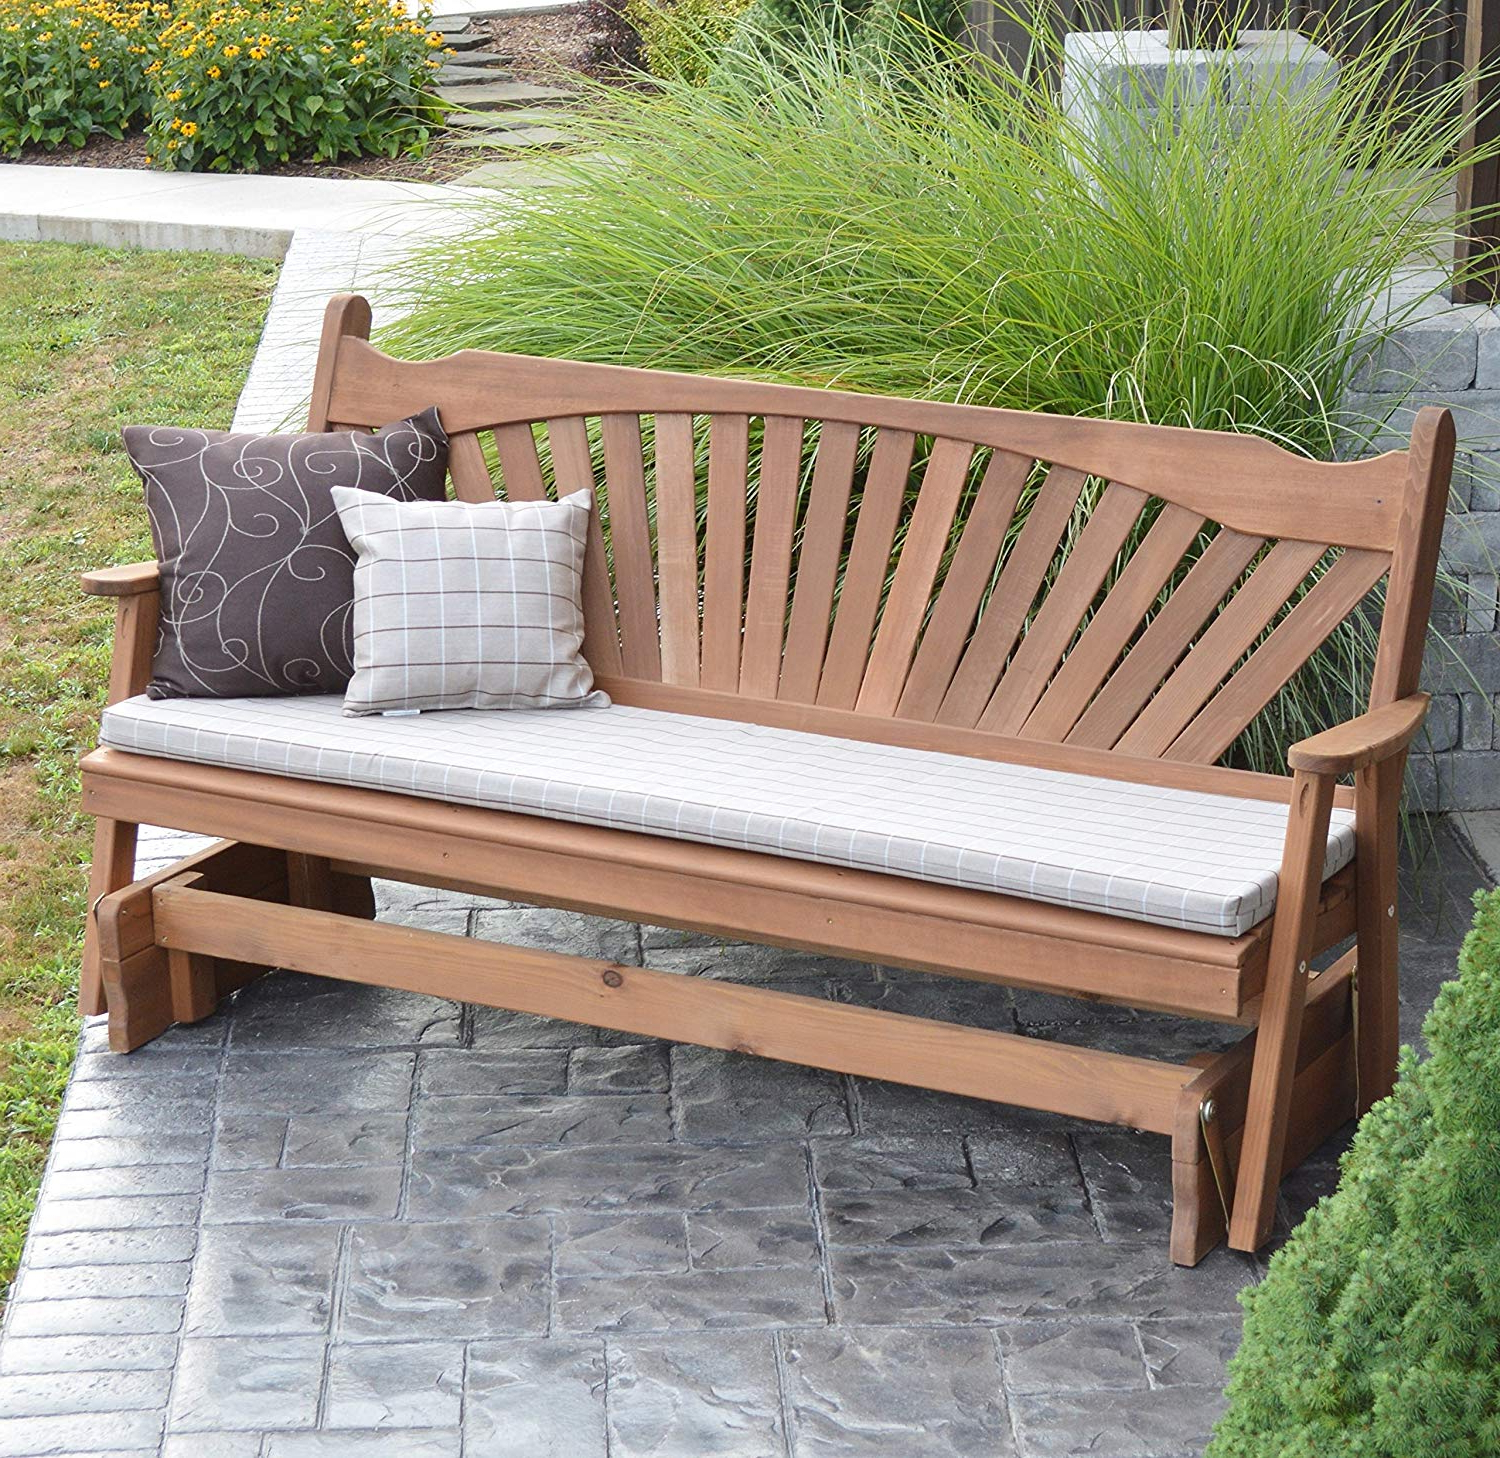 Widely Used 2 Person Natural Cedar Wood Outdoor Gliders Throughout Cedar Porch Glider Bench Outdoor Patio Gliding Bench, 2 Person Wooden Loveseat Benches, Amish Made Furniture Weather Resistant Western Red Cedar Wood, (View 7 of 30)